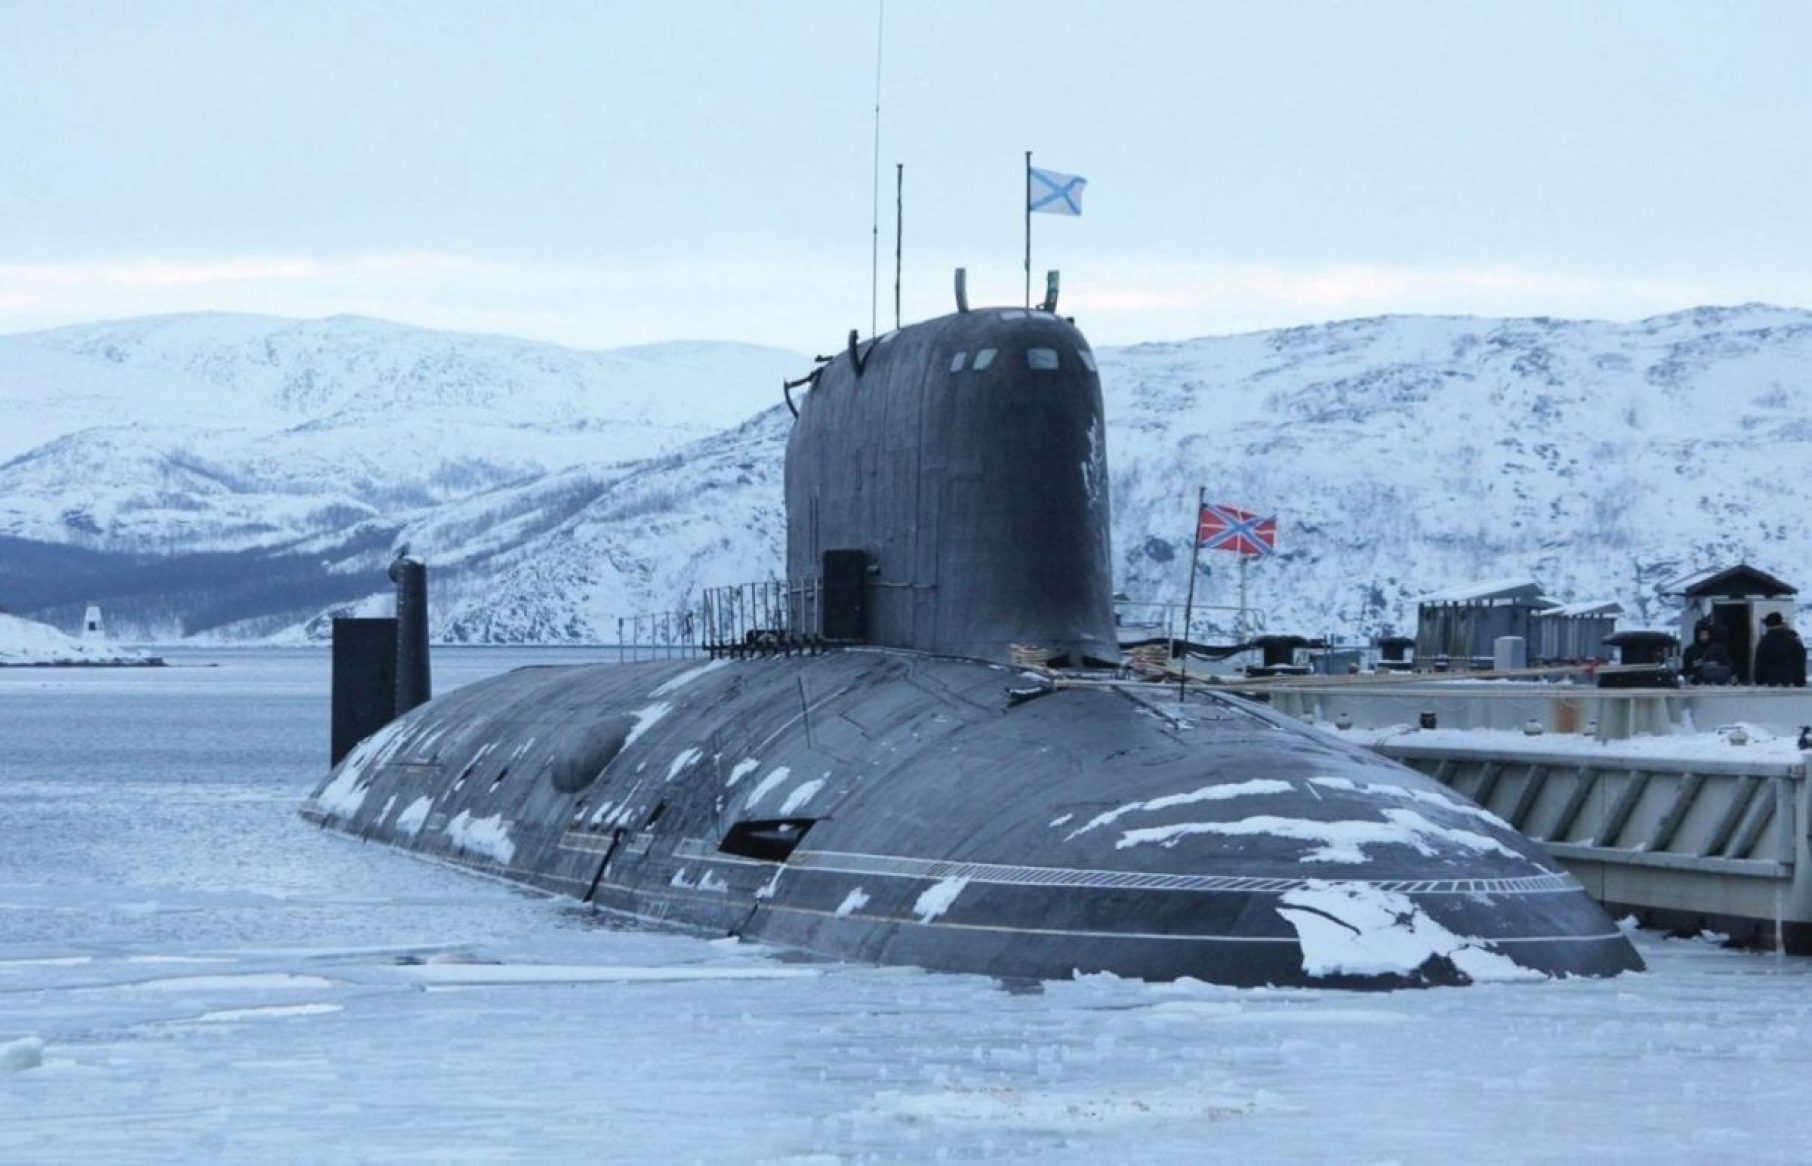 The Russian Yasen-class cruise missile submarine Severodvinsk.